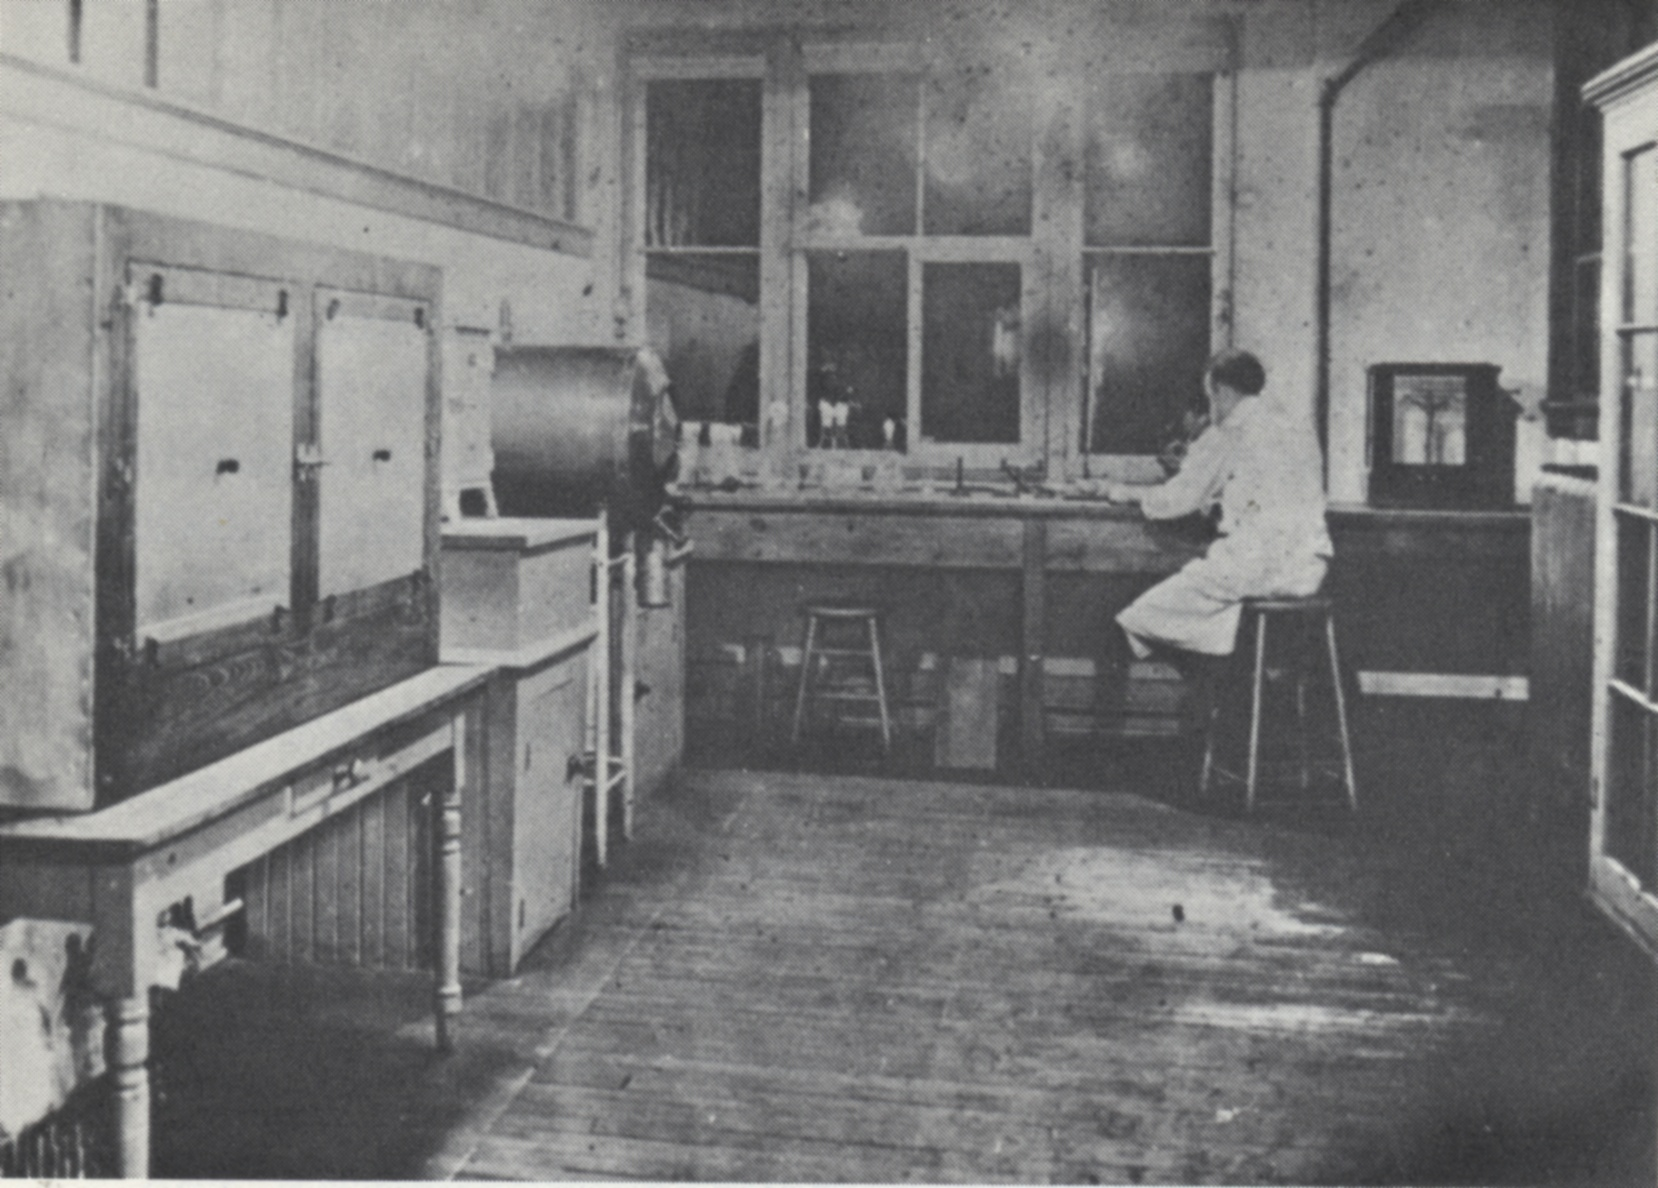 """The first laboratory for preparing diphtheria toxin, Antitoxin Laboratory, 1914 (scanned from R.D. Defries, """"The First Forty Years, 1914-1955: Connaught Medical Research Laboratories, University of Toronto"""""""